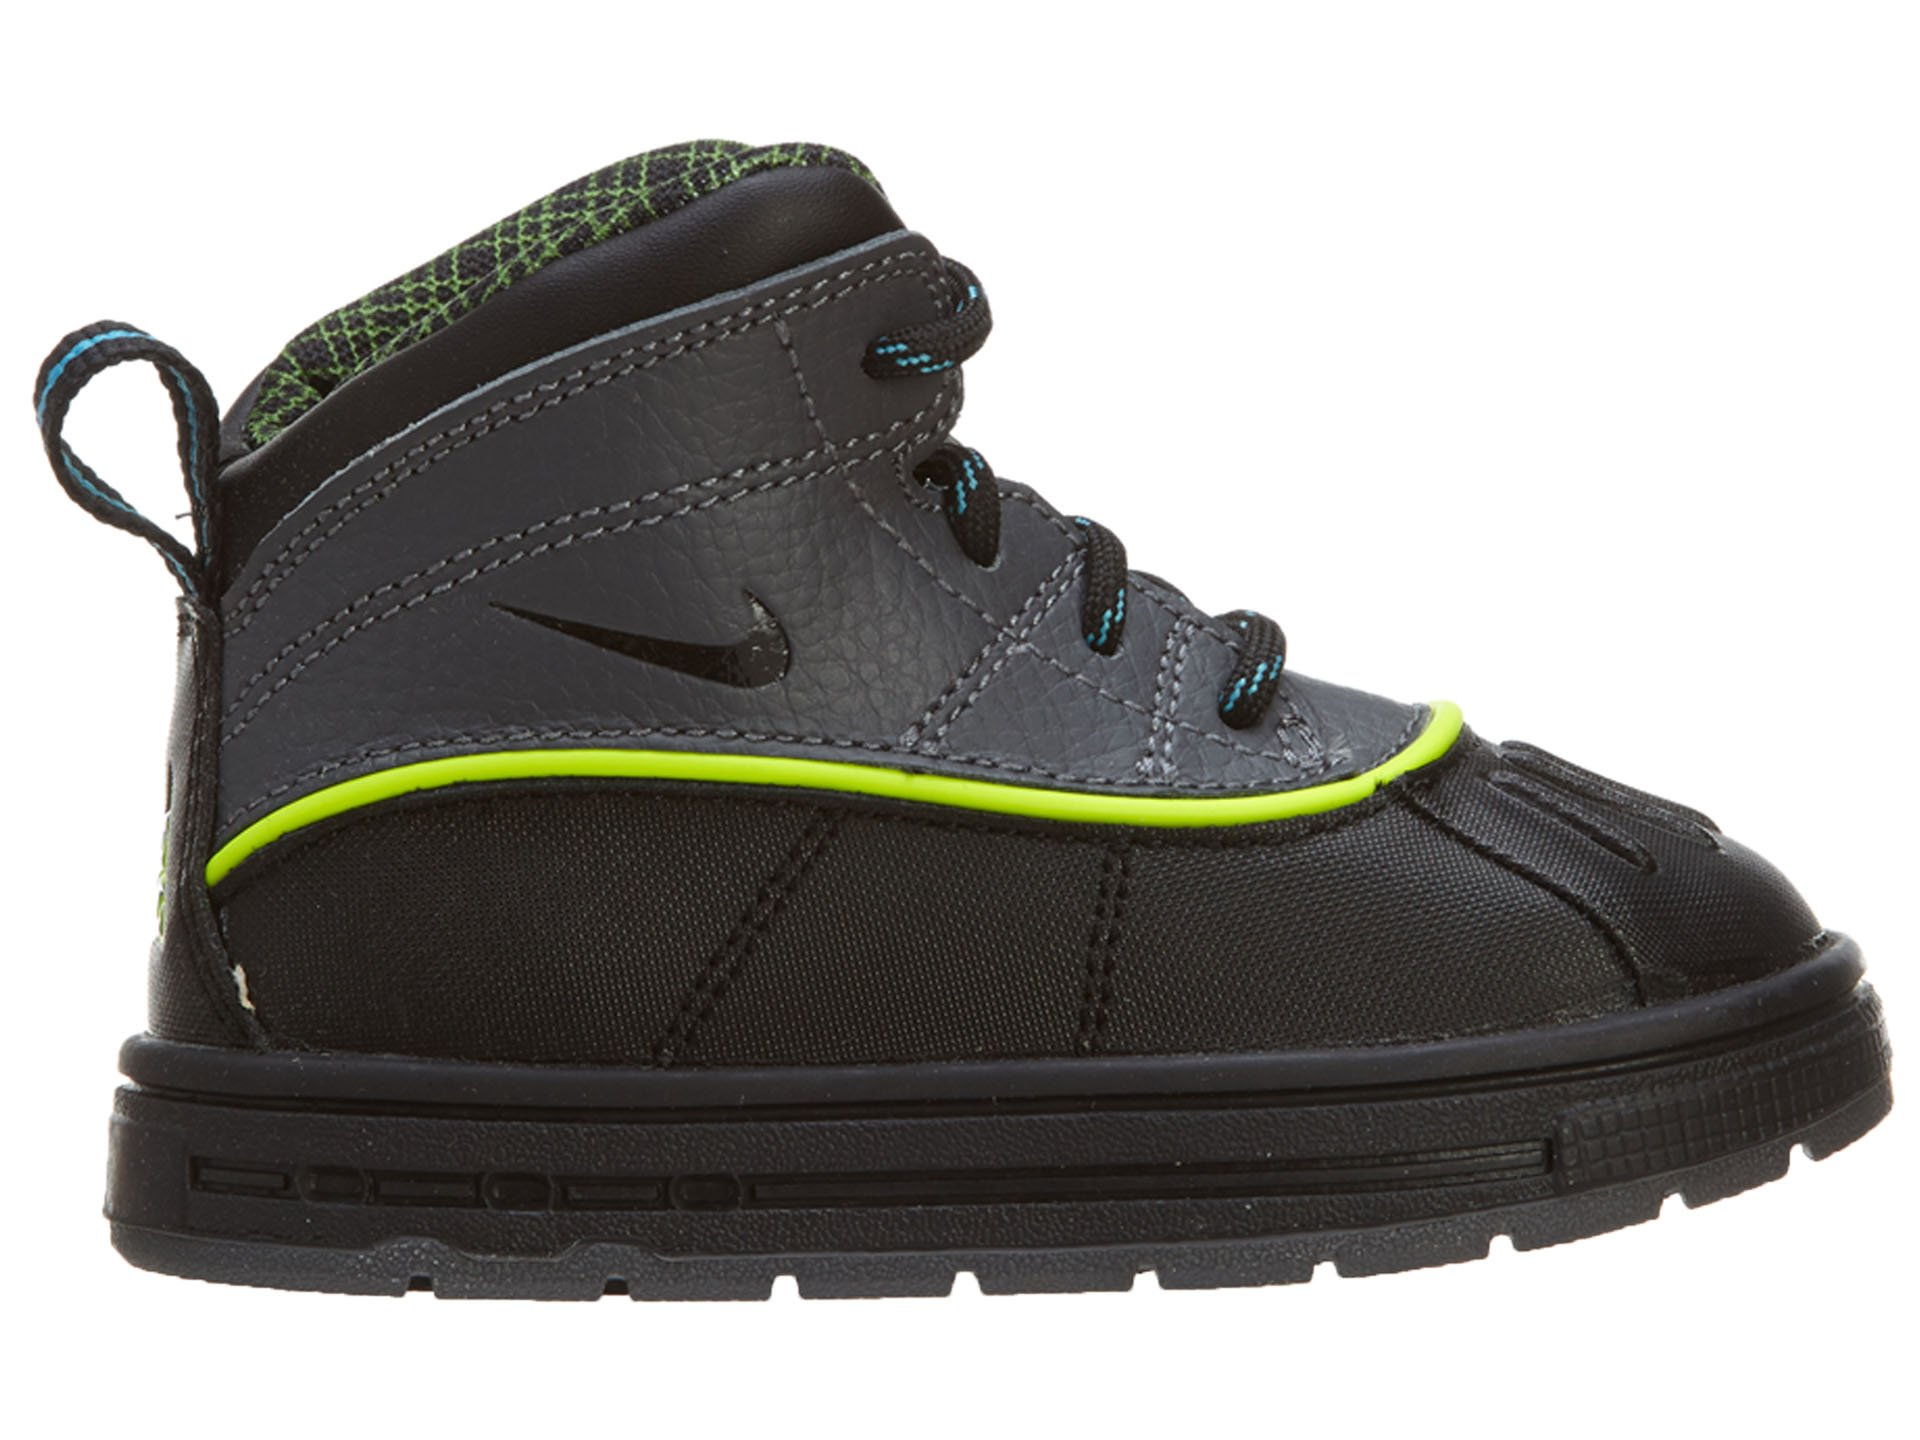 Nike Woodside 2 High (Td) Toddlers Boys/Girls Style: 524874-002 Size: 4 by Nike (Image #2)